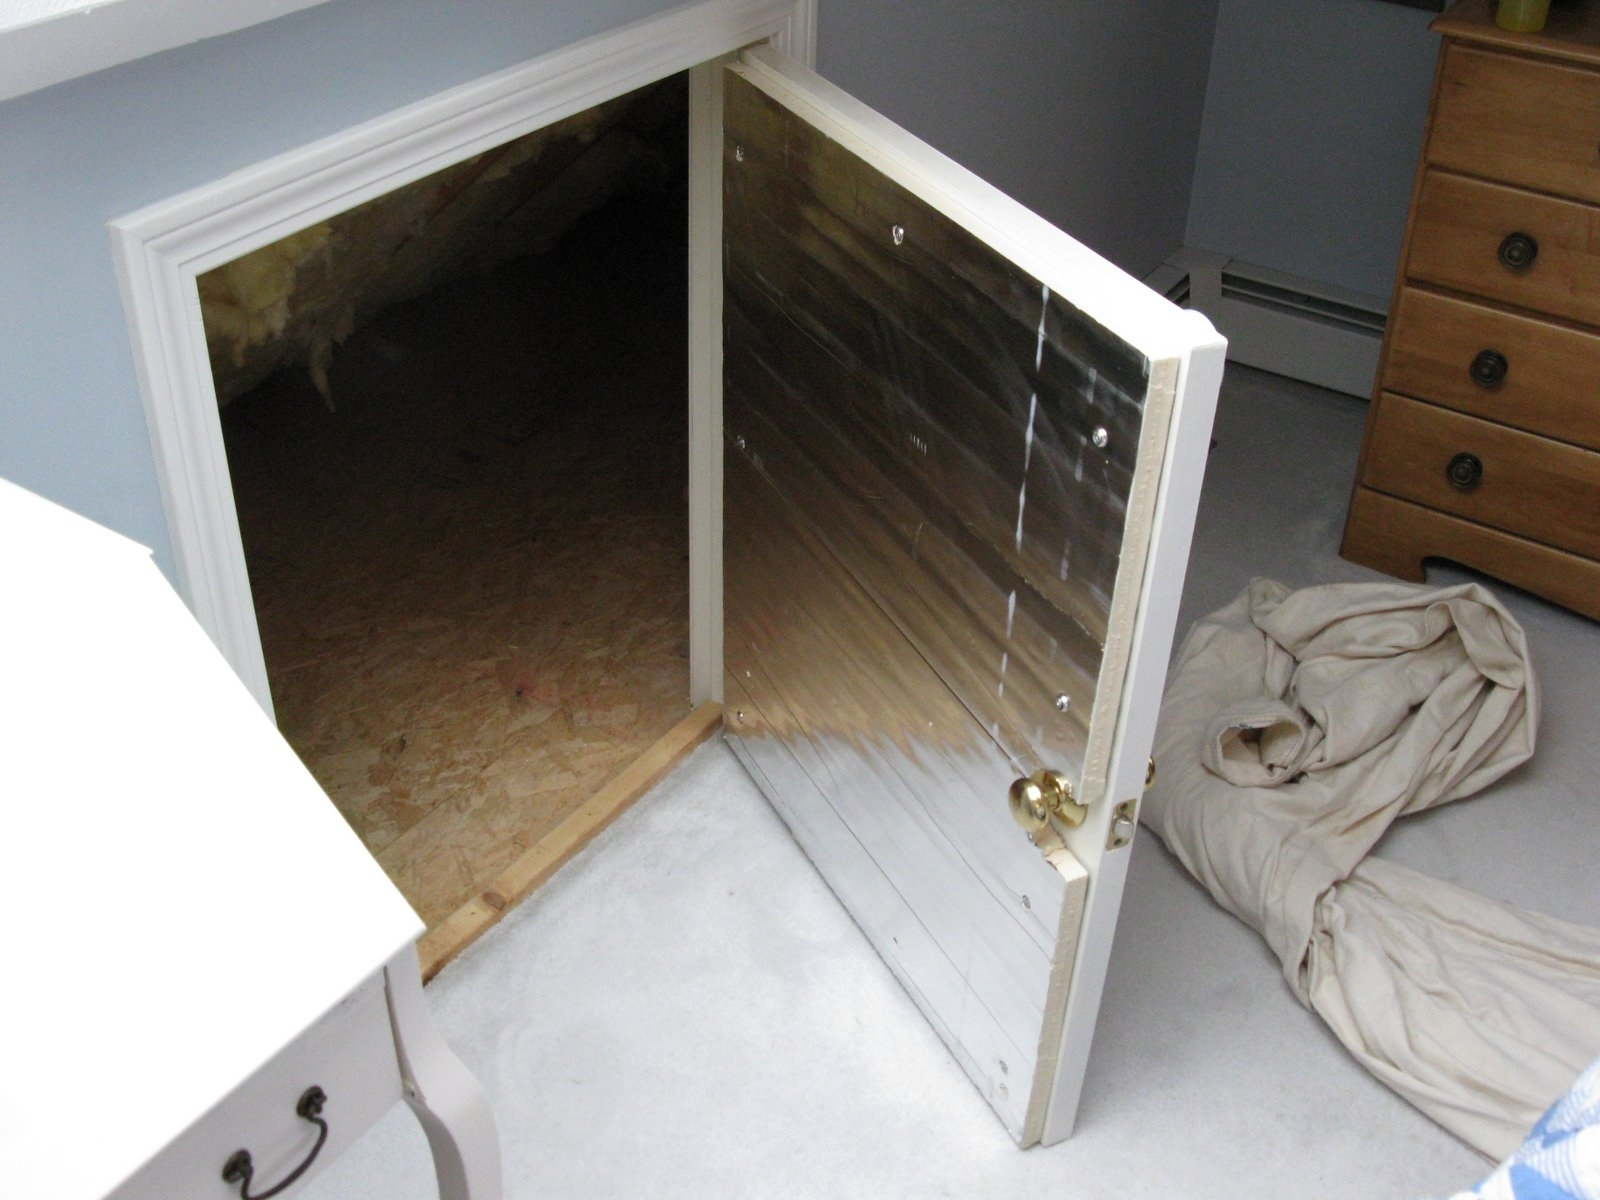 Crawl Space Floor Access Doors Madison Art Center Design